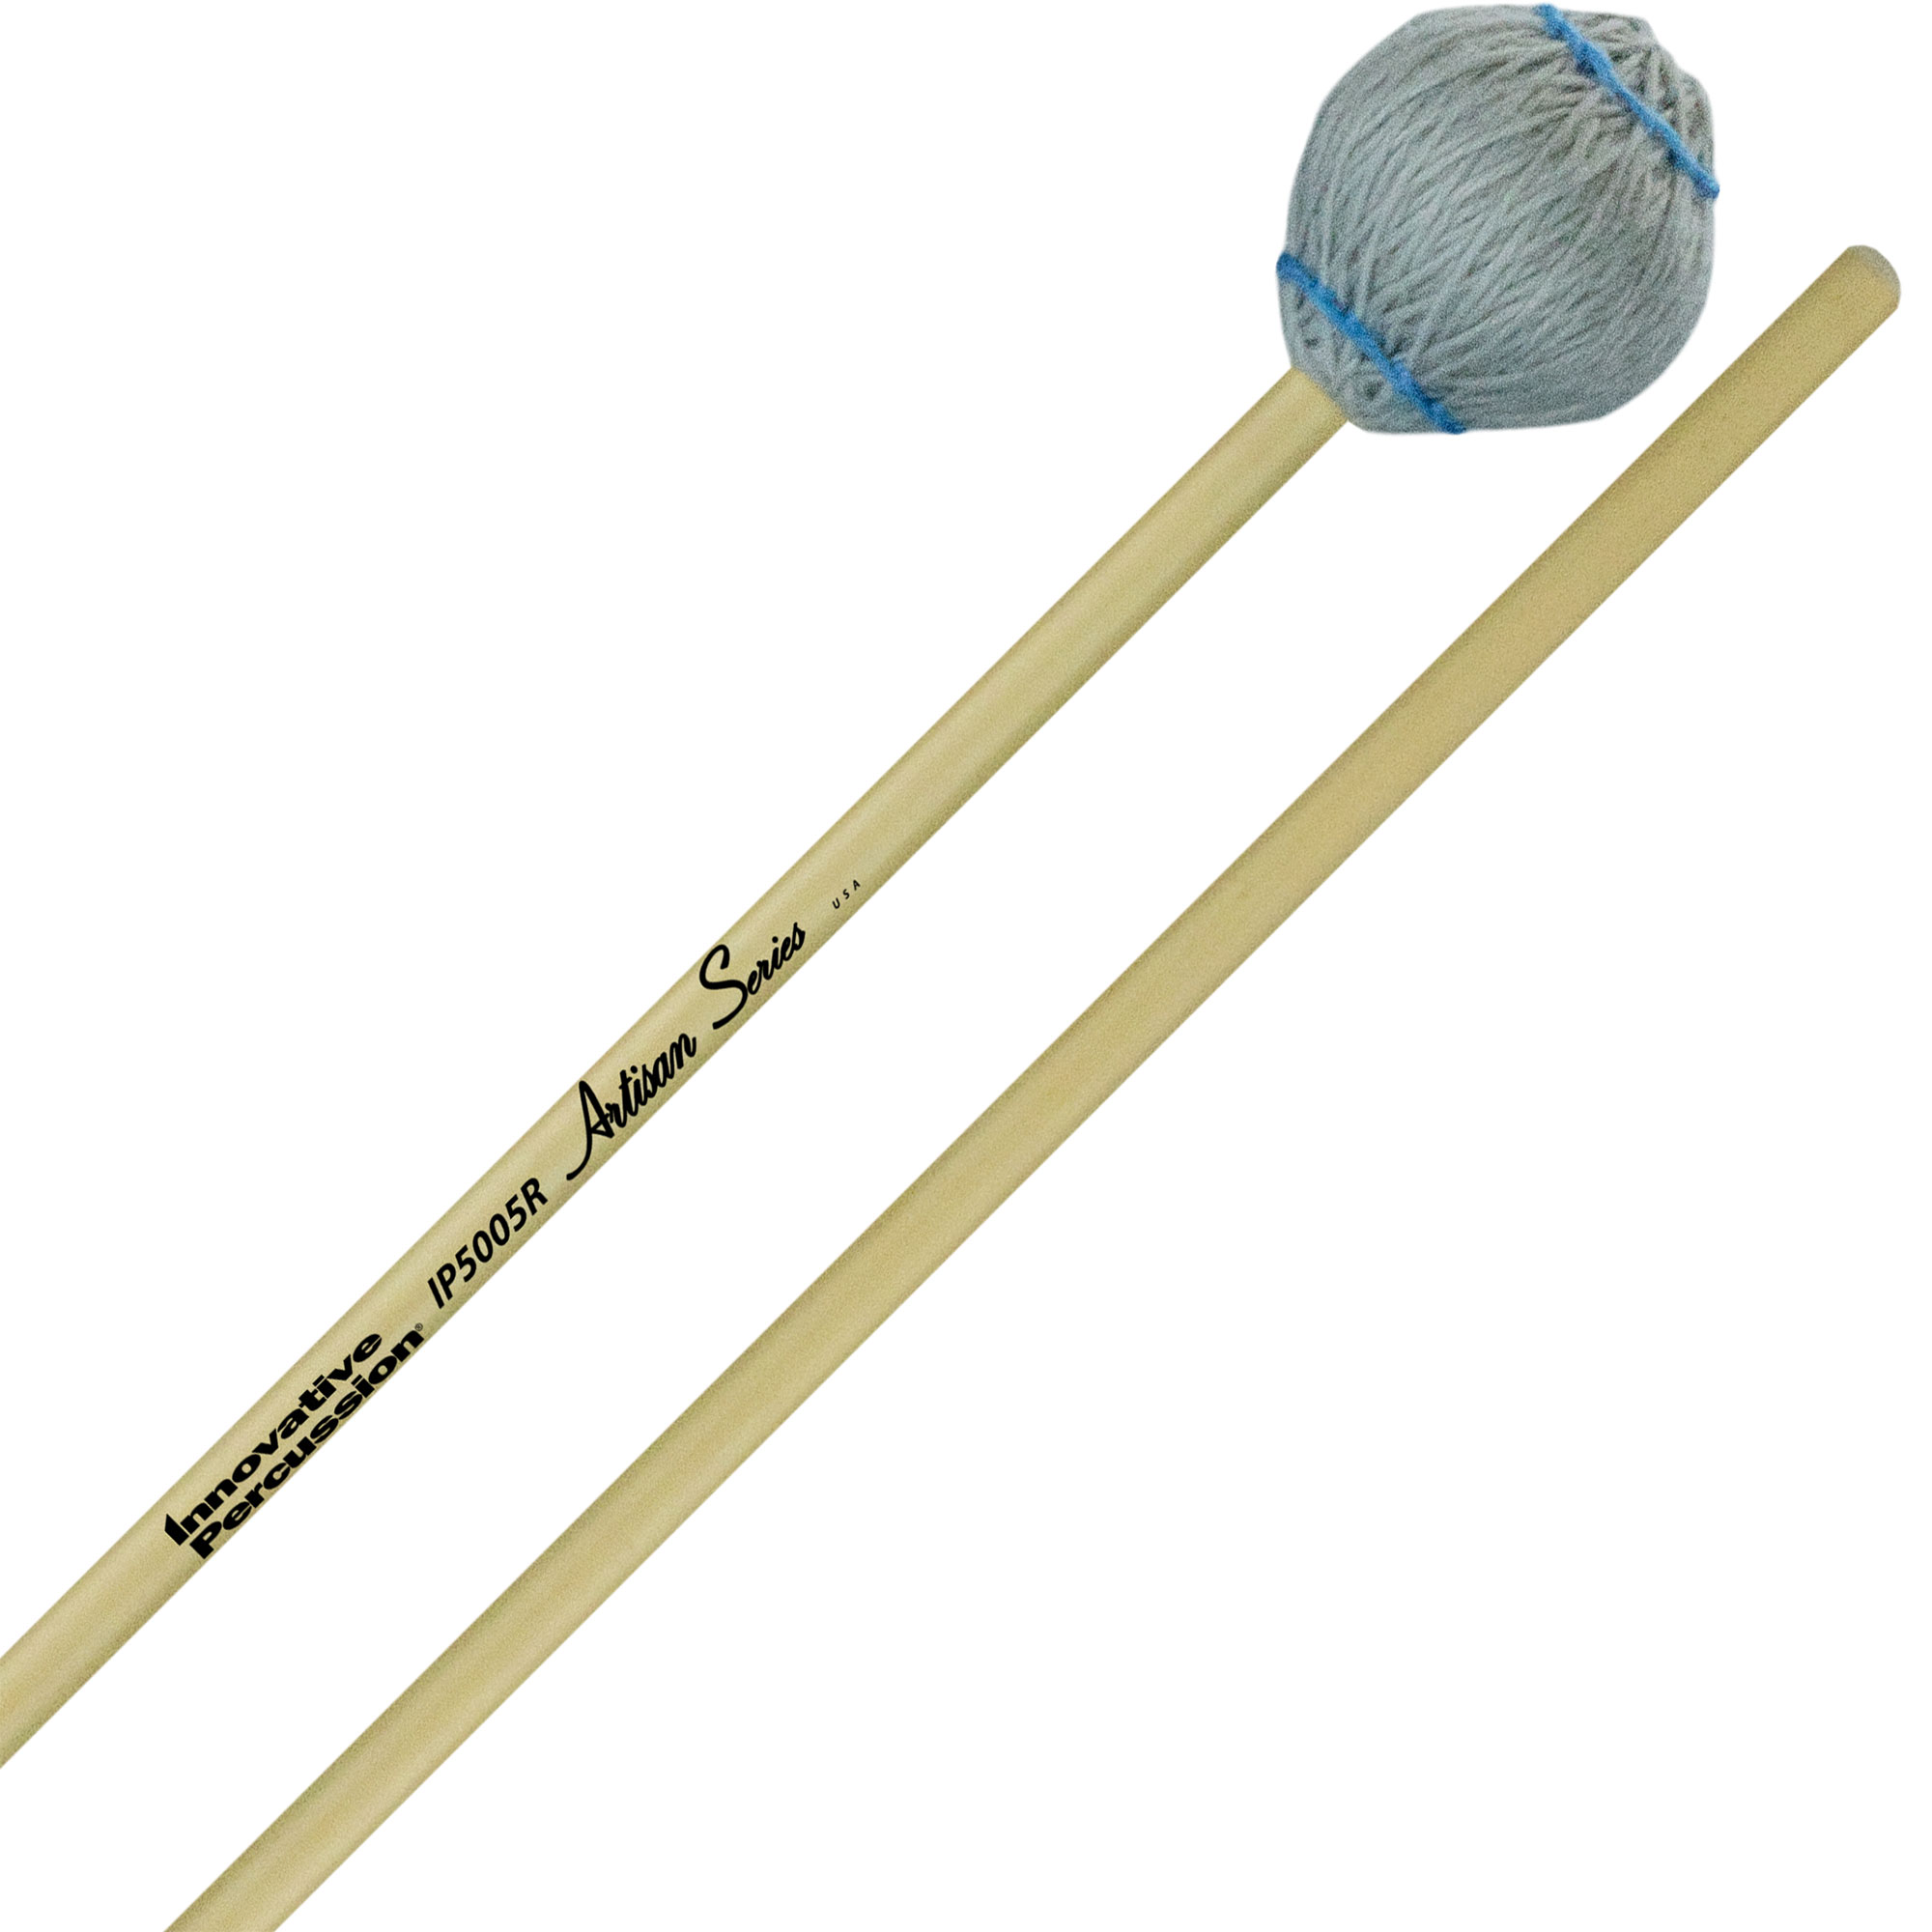 Innovative Percussion Artisan Series Hard Marimba Mallets with Rattan Handles